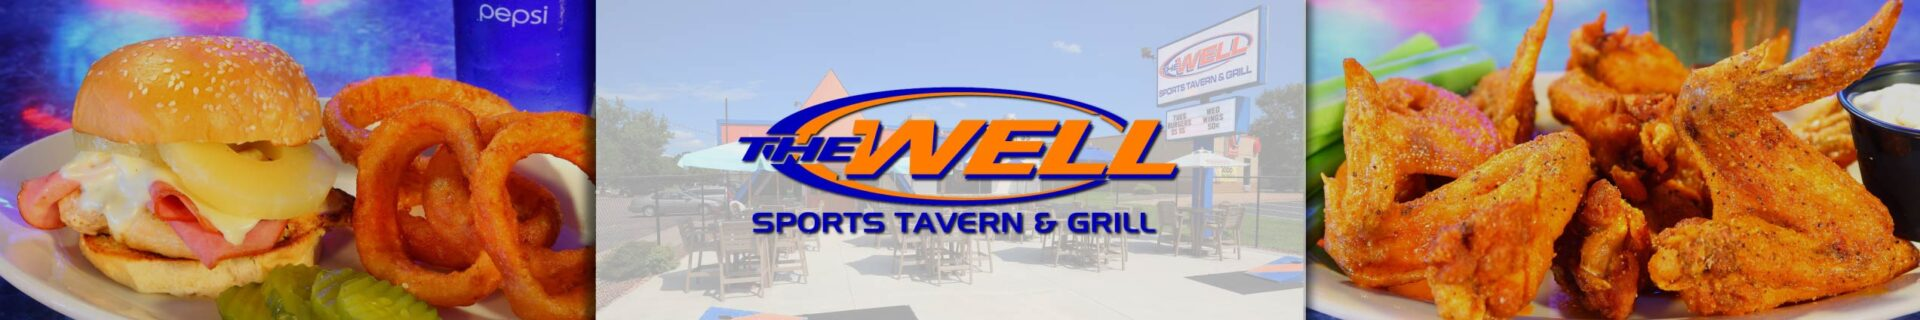 The Well Sports Tavern & Grill